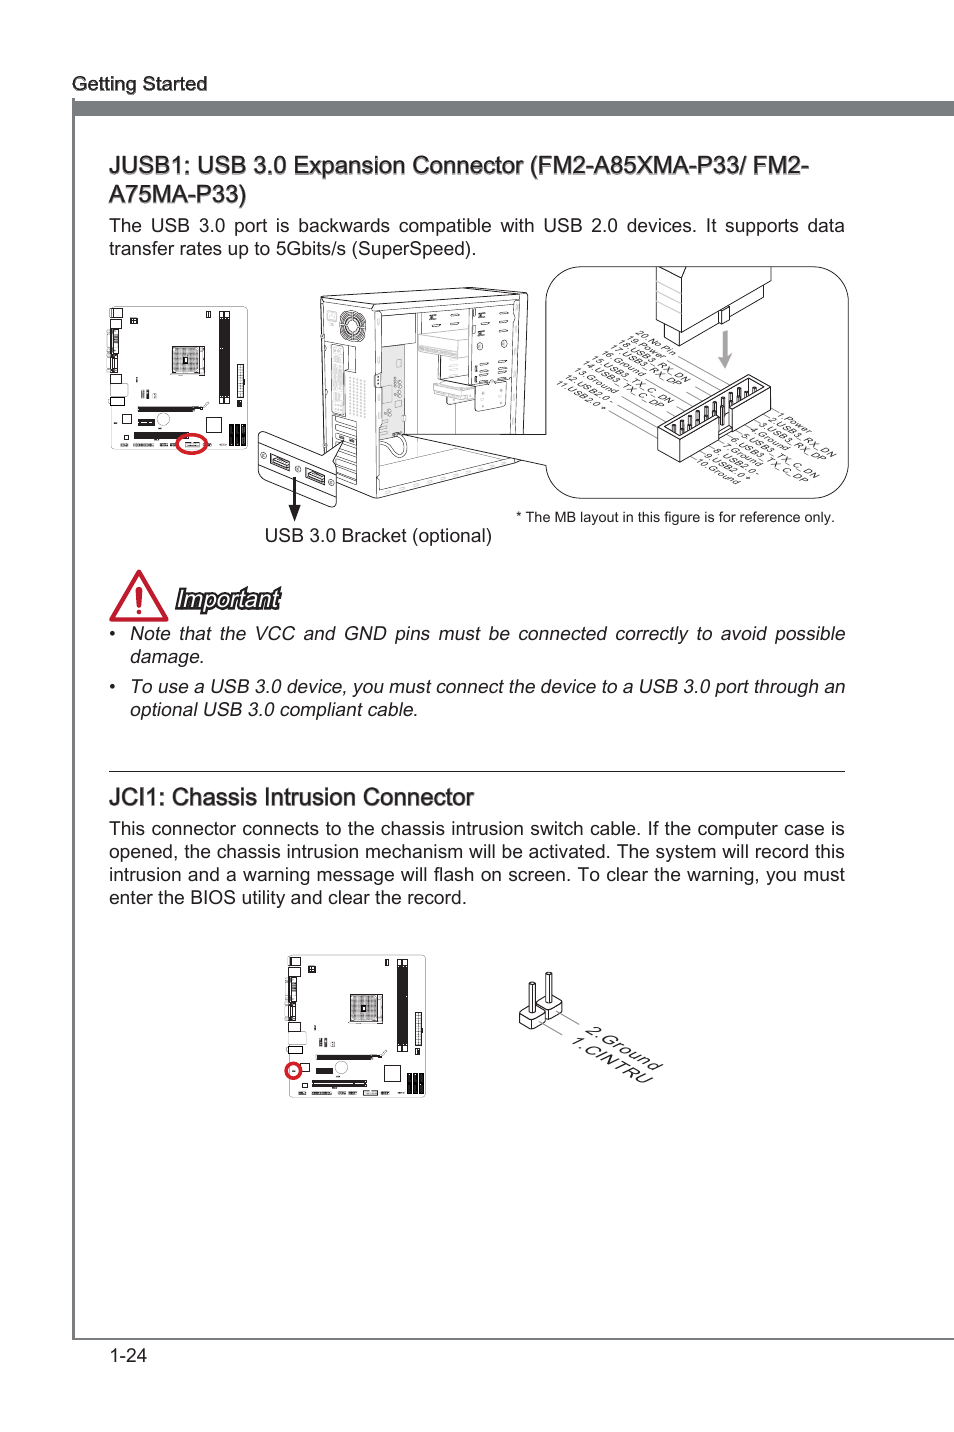 Jci1 Chassis Intrusion Connector Chass S Intrus On Nikon D40 Usb Cable Schematic Msi Fm2 A75ma P33 User Manual Page 36 84